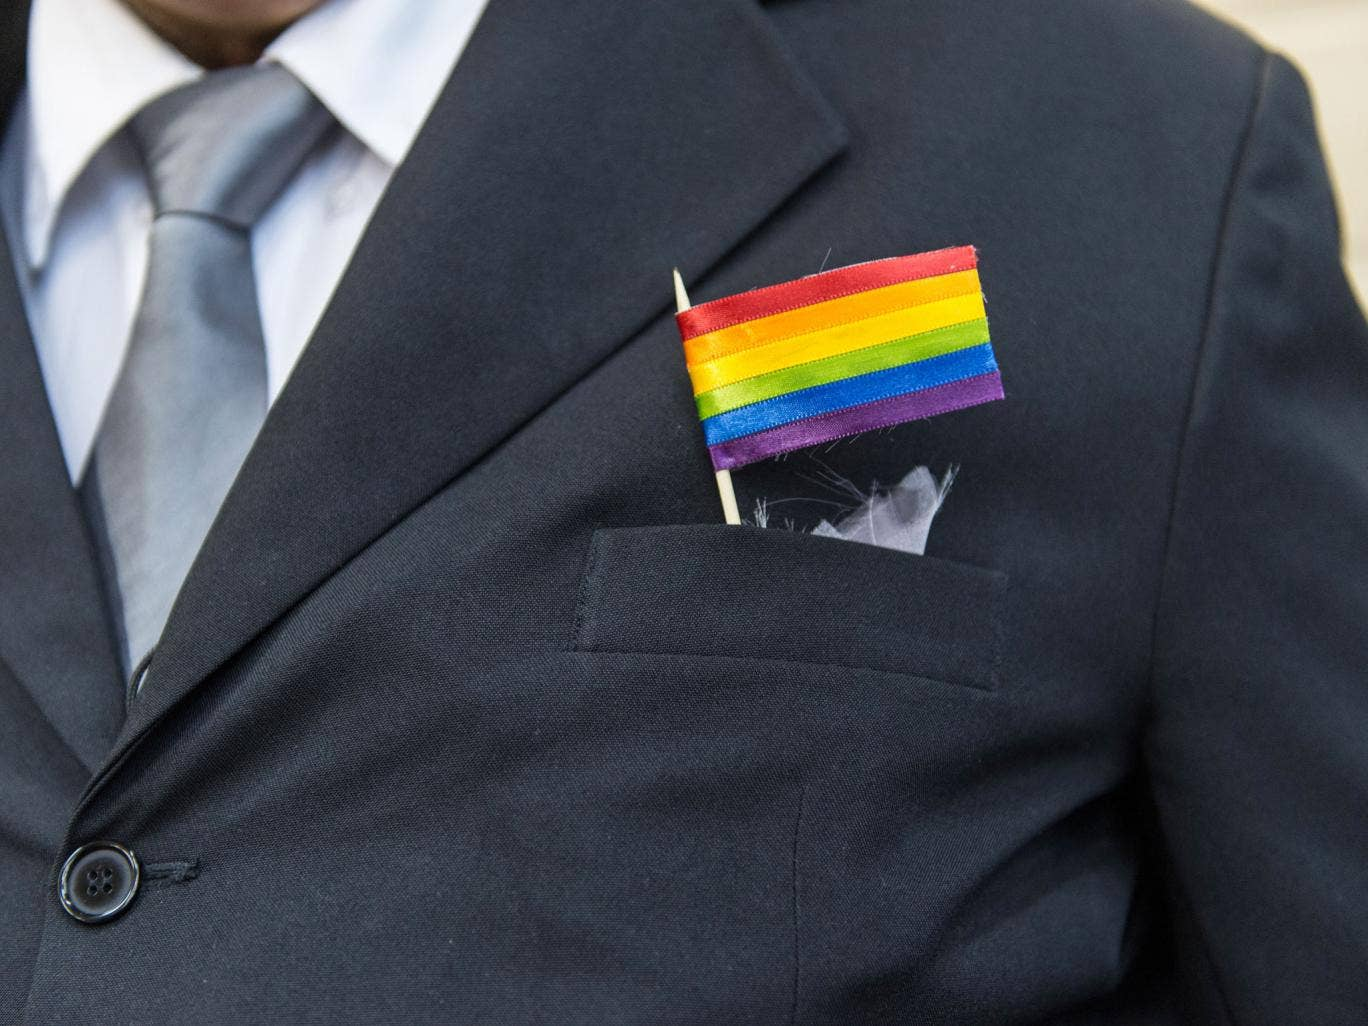 The father of a bride wears a rainbow flag during the wedding ceremony at the Court of Justice of the State of Rio de Janeiro in Rio de Janeiro, Brazil, on December 8, 2013. 130 gay couples are getting married in the first massive wedding ceremony since t